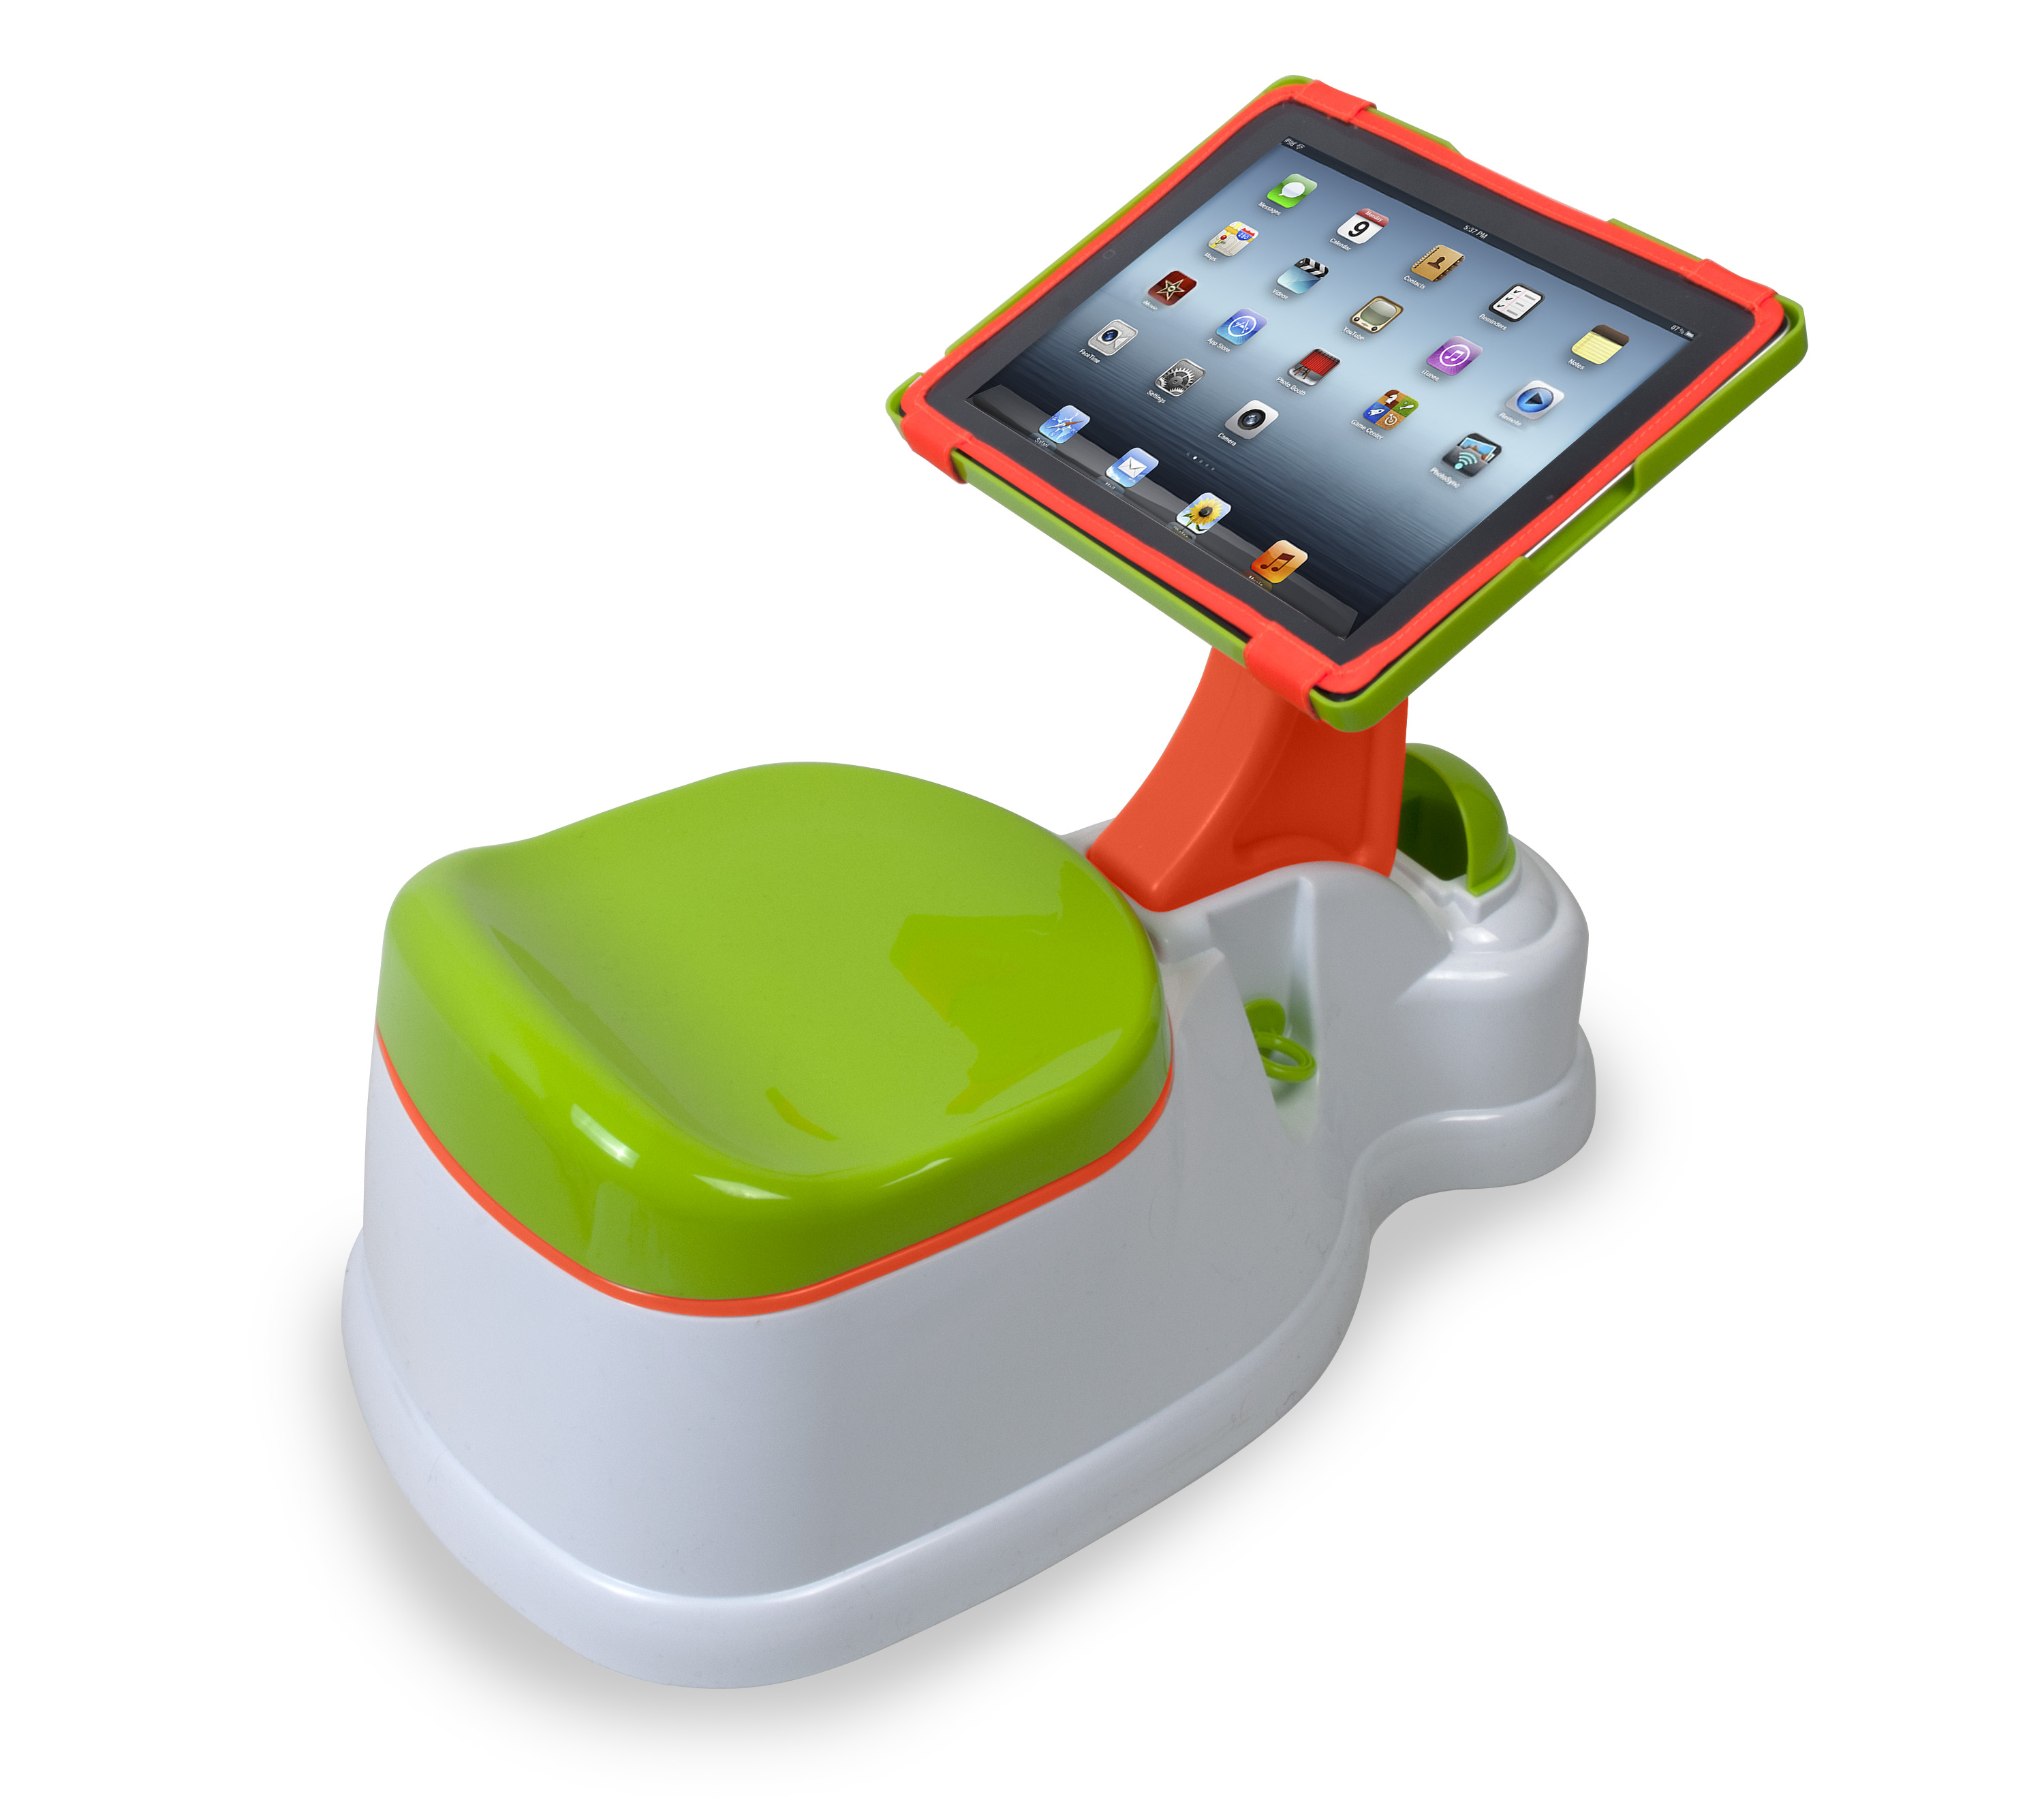 singing potty chair folding directors pee or poop and play ipotty for ipad the talking walnut tags